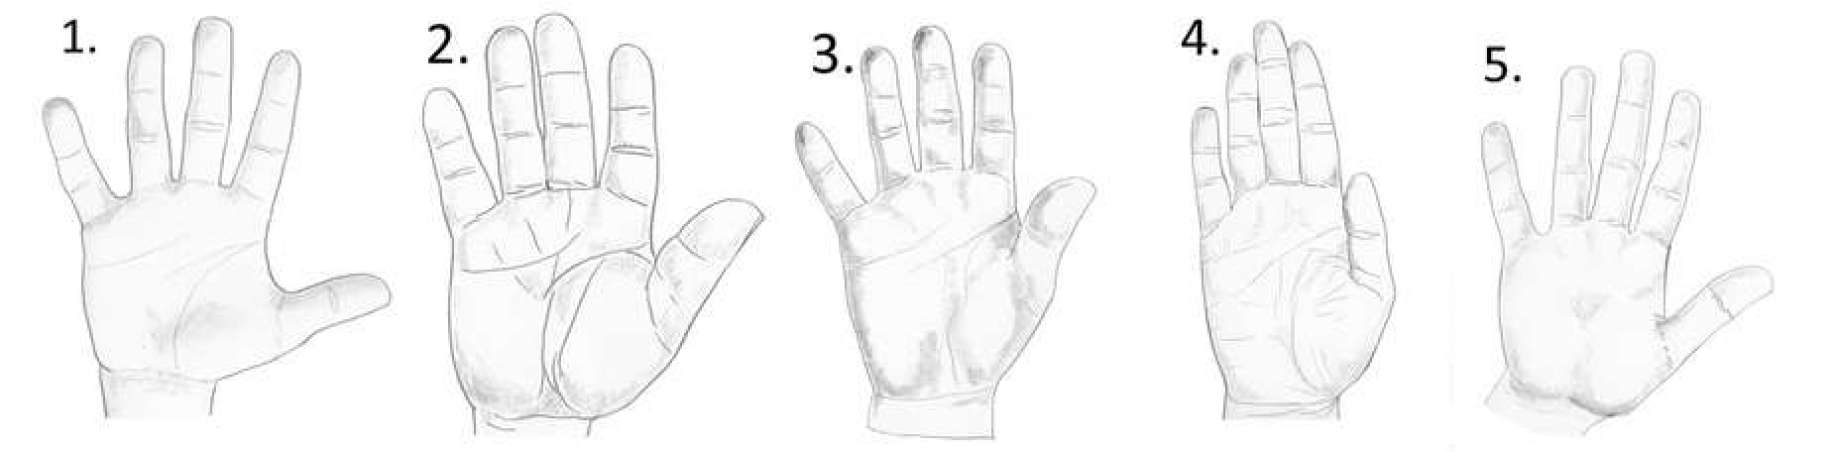 palmistry hand meanings, earth hand shape